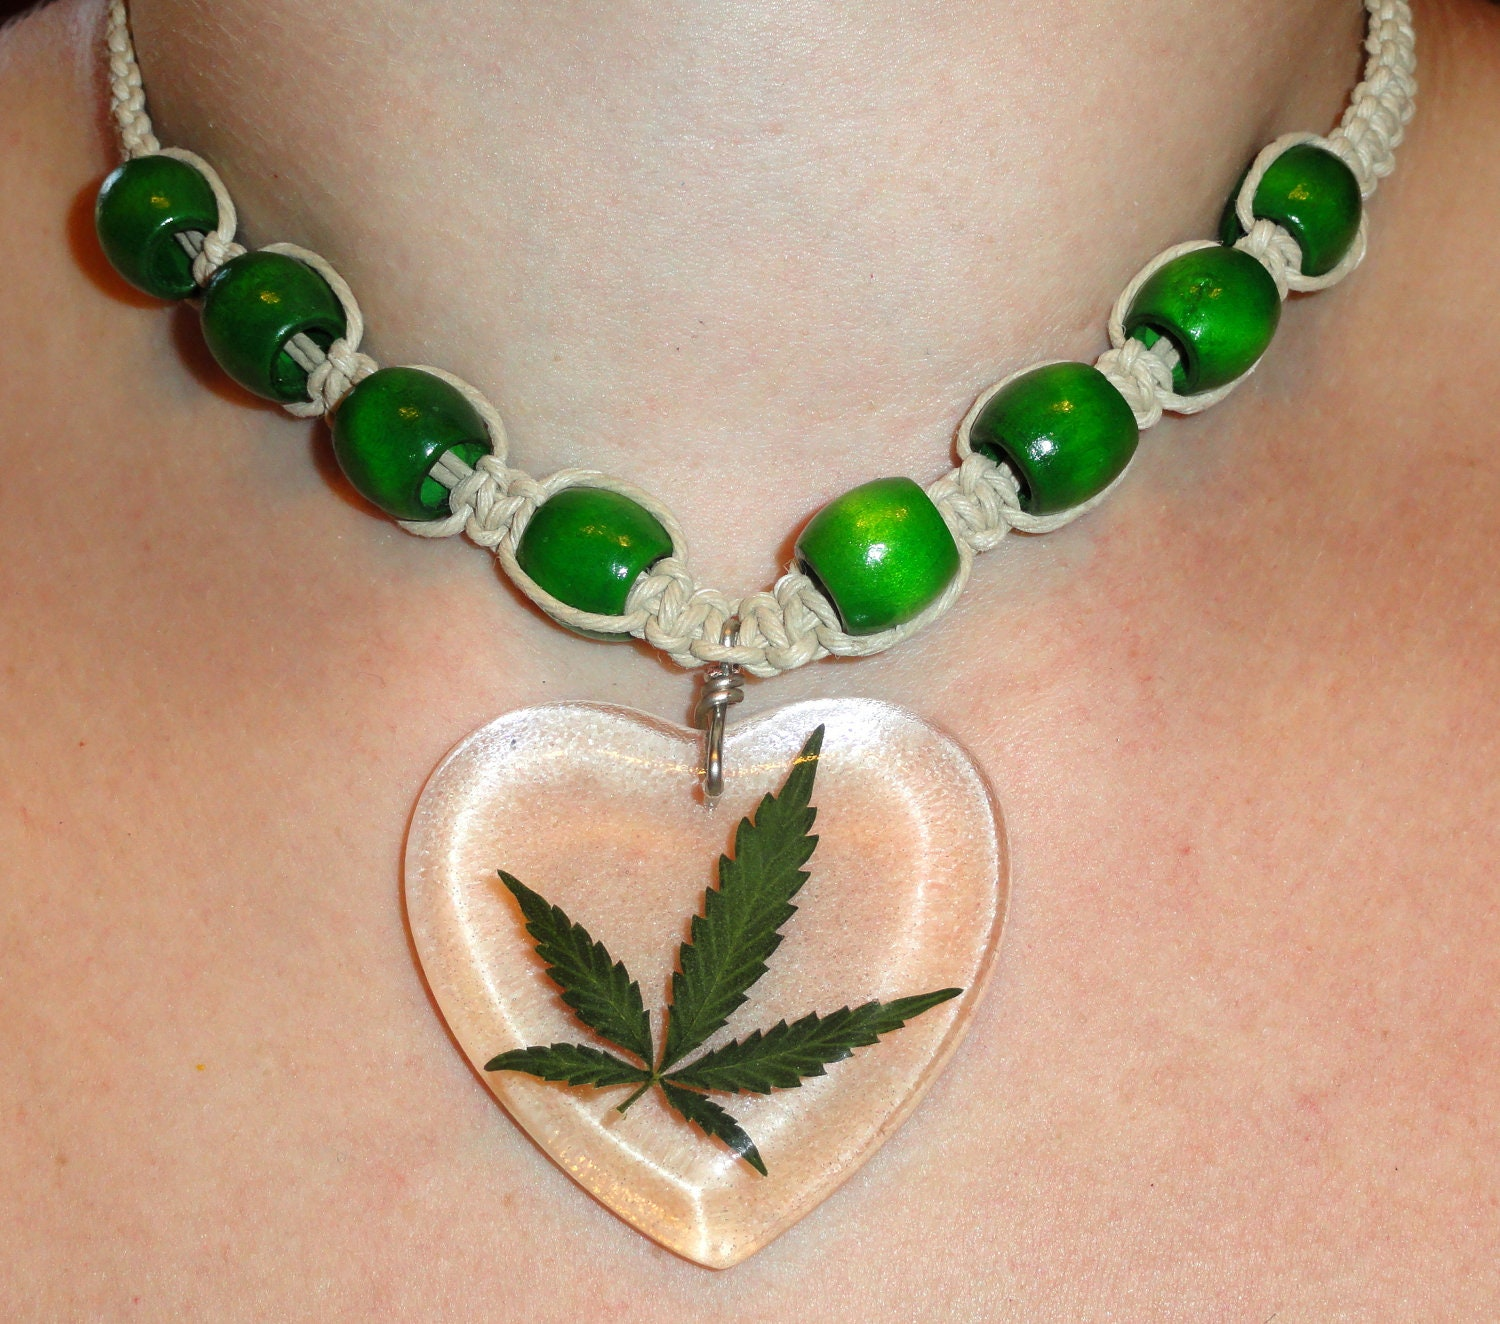 How To Make Hemp Necklaces: REAL MARIJUANA LEAF Hemp Necklace Clear Heart By Thefunkyjunky